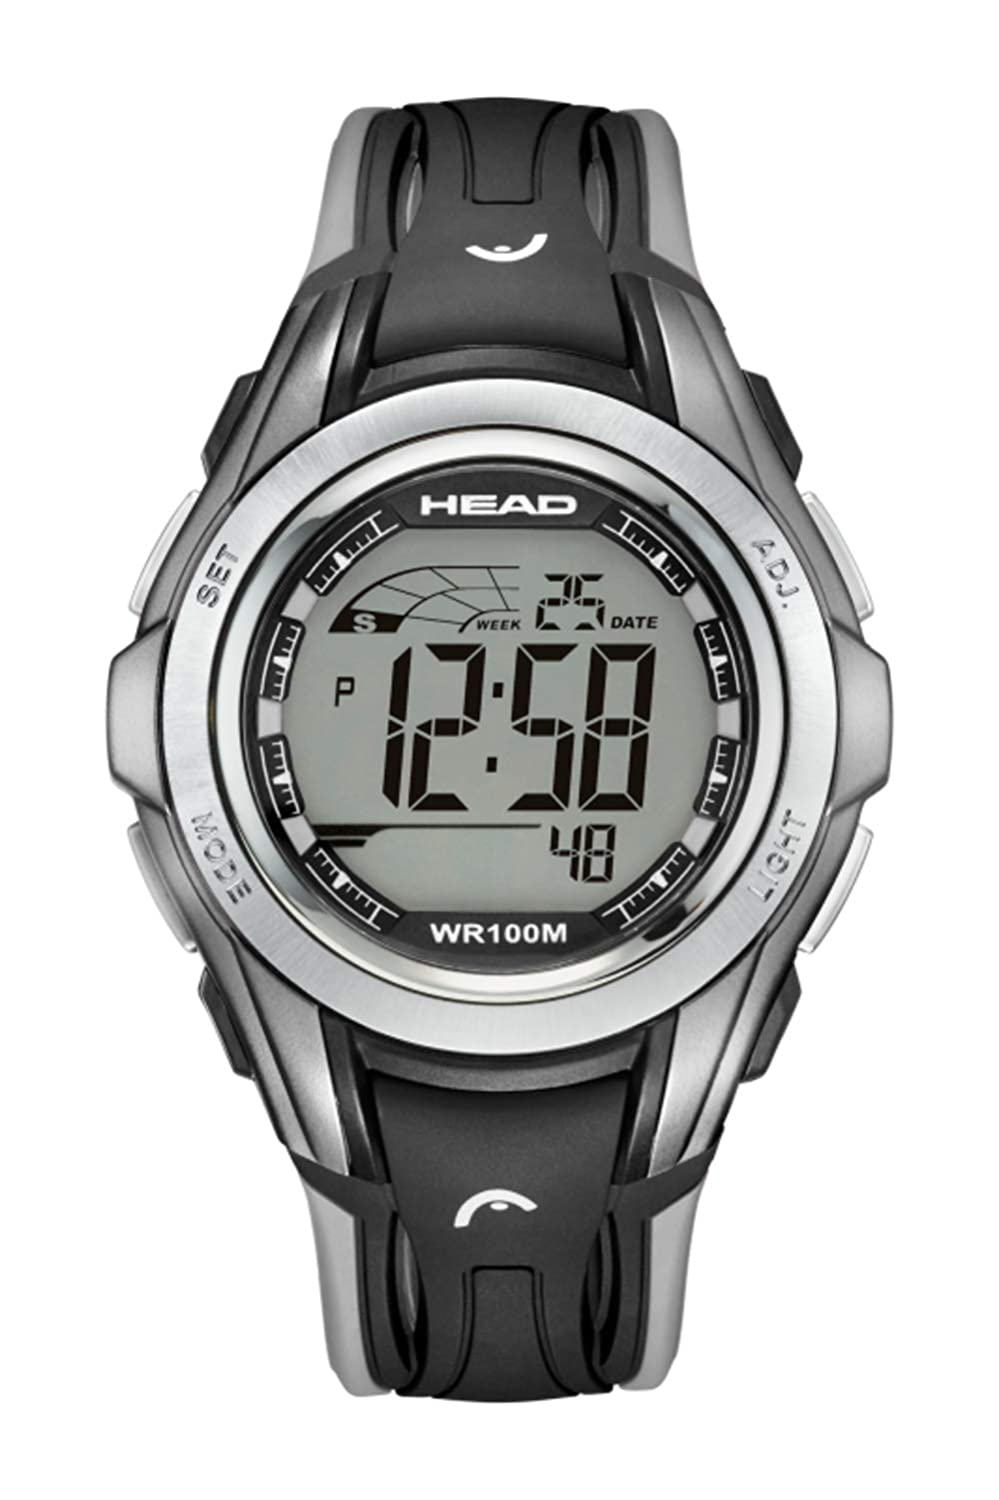 Winner Men & Women Sport Watch 10ATM Waterproof and Shock Resistant. Chronograph with Split, Timer, Alarm and Second Time Zone. Pefrect for Travel and ...